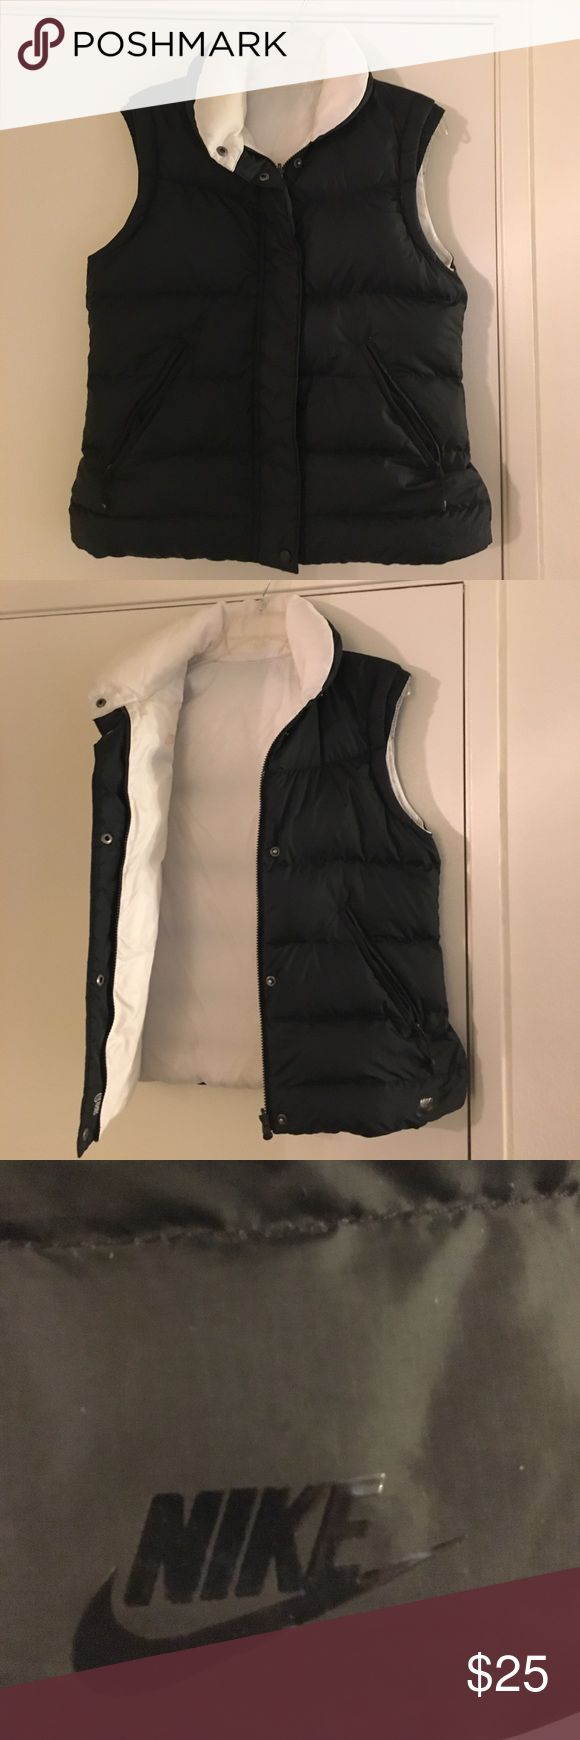 Nike Women's Sports Vest Nike Women's Sport Vest! Great condition. No stains, rips or tears. Water resistant. Nike Jackets & Coats Vests